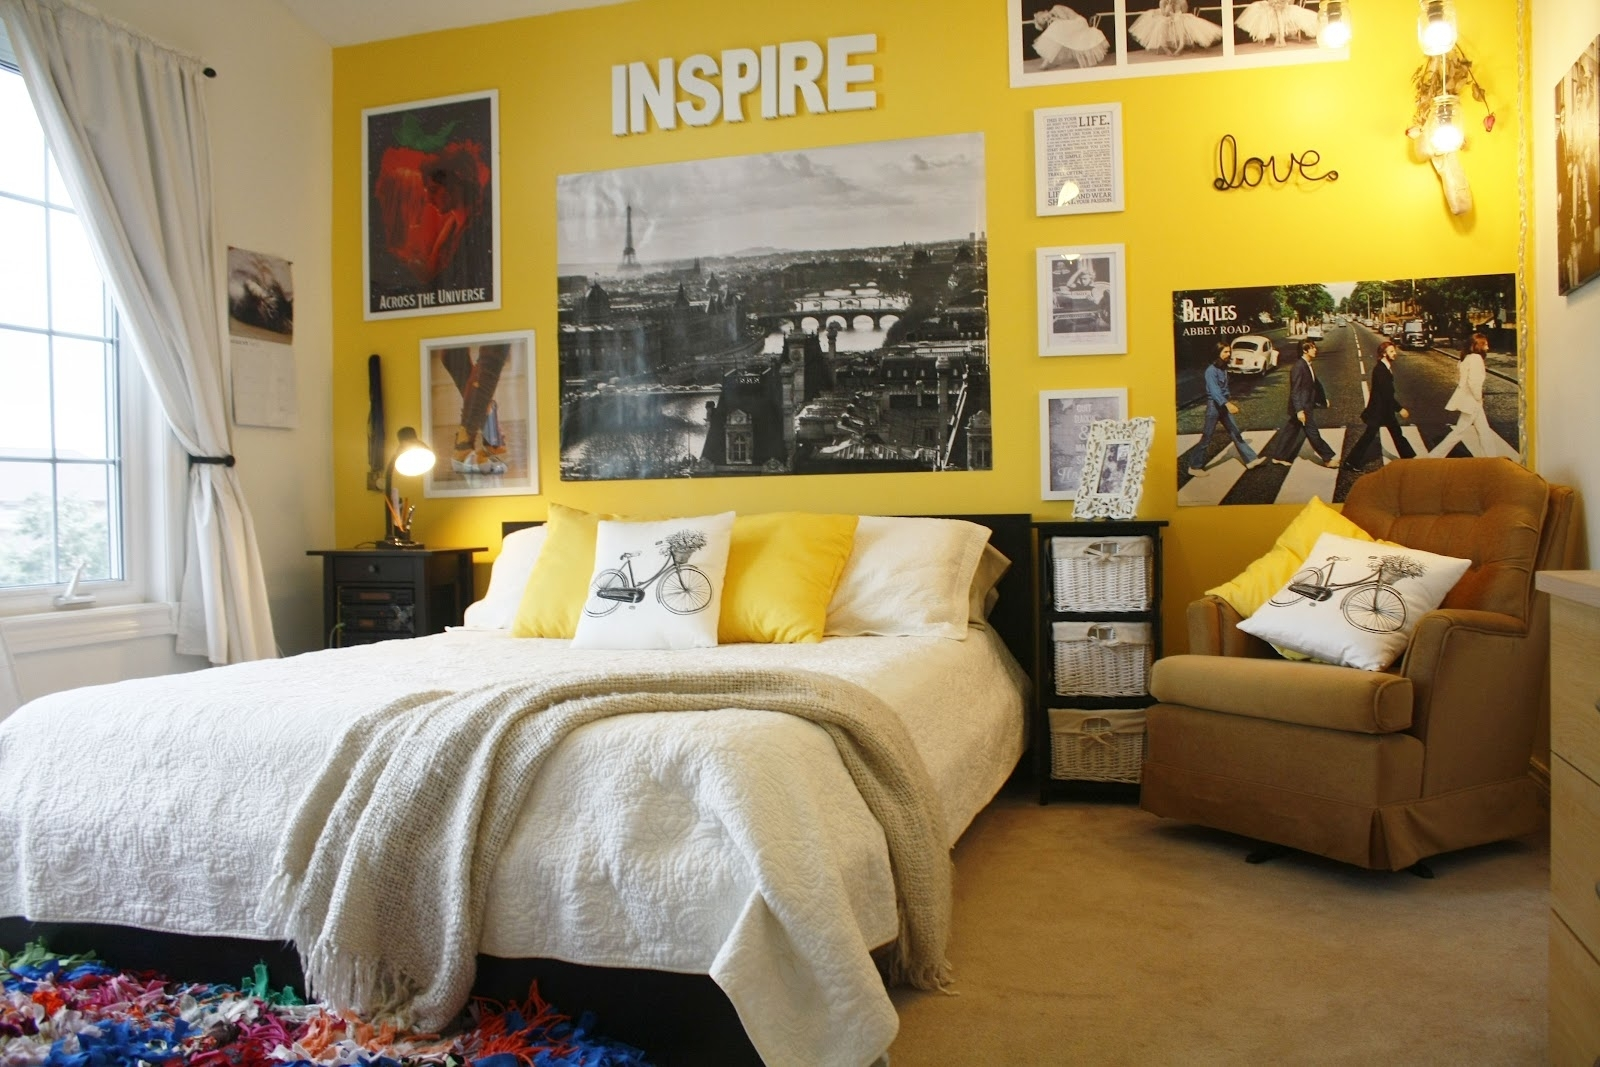 Image Gallery of Yellow Wall Accents (View 9 of 15 Photos)